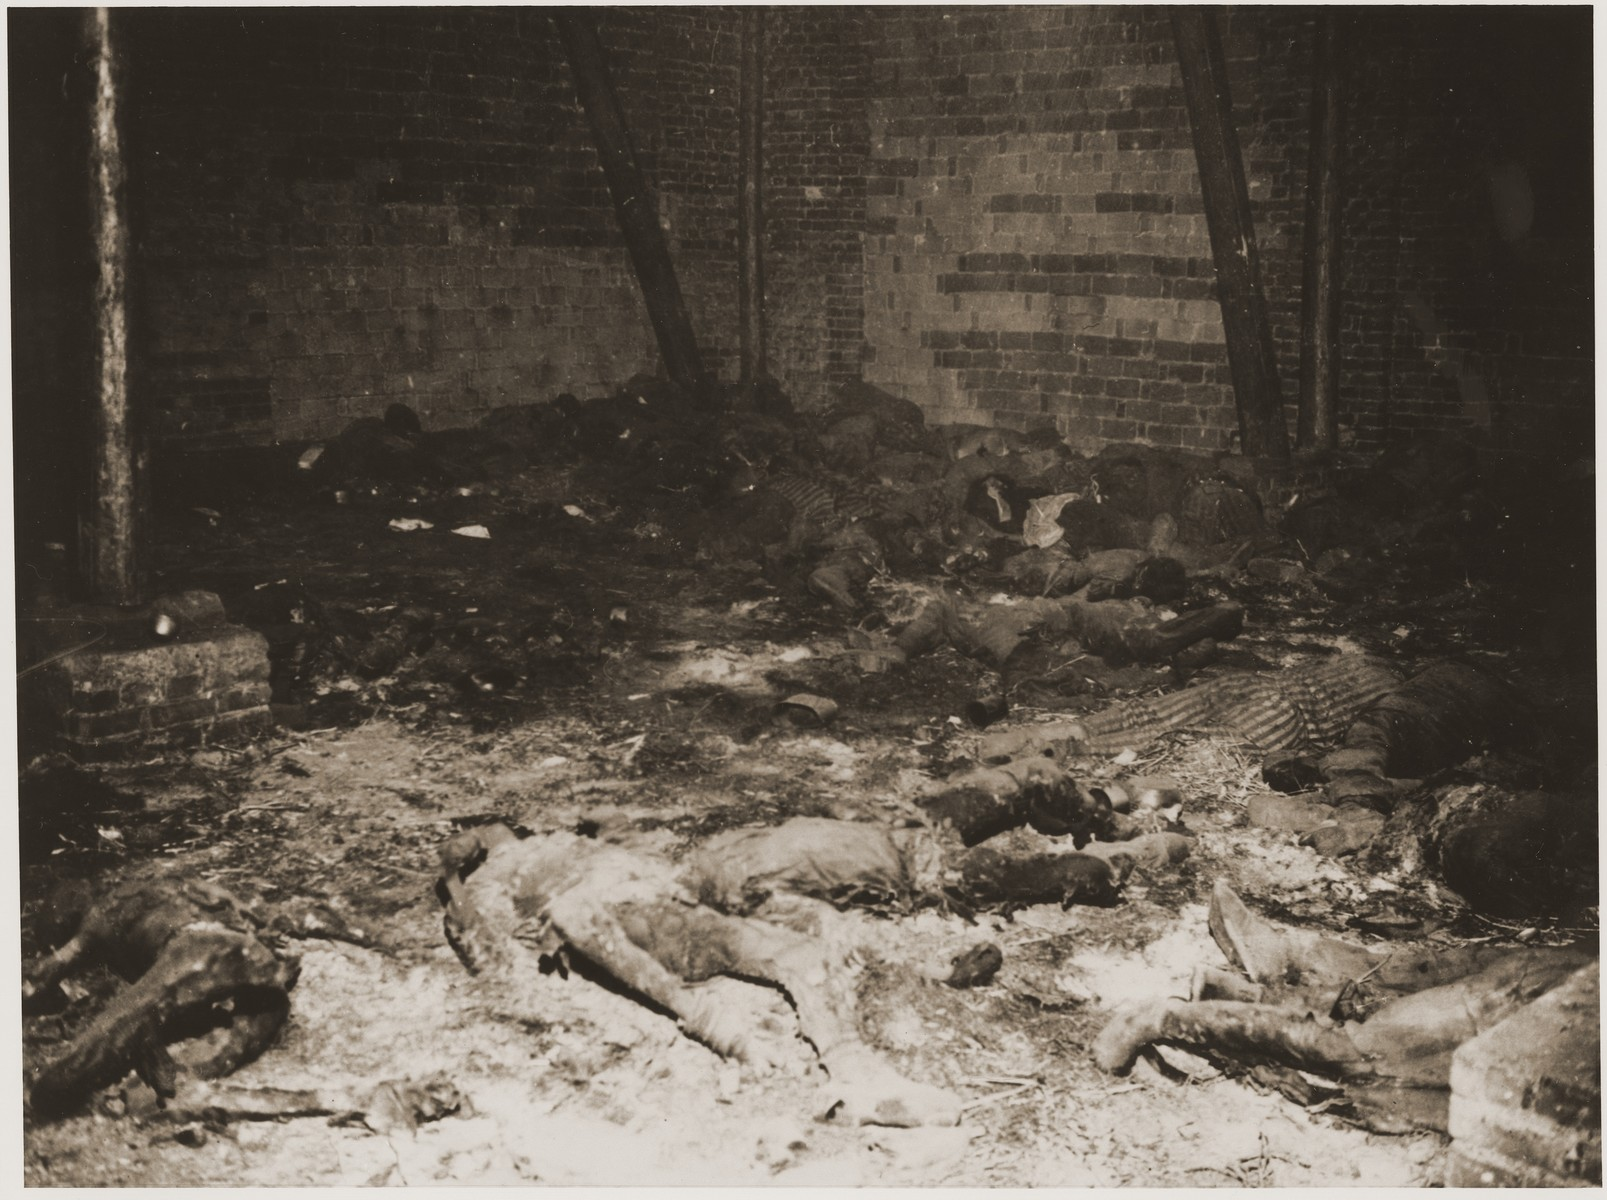 The charred bodies of prisoners who were burned alive in a barn outside of Gardelegen.